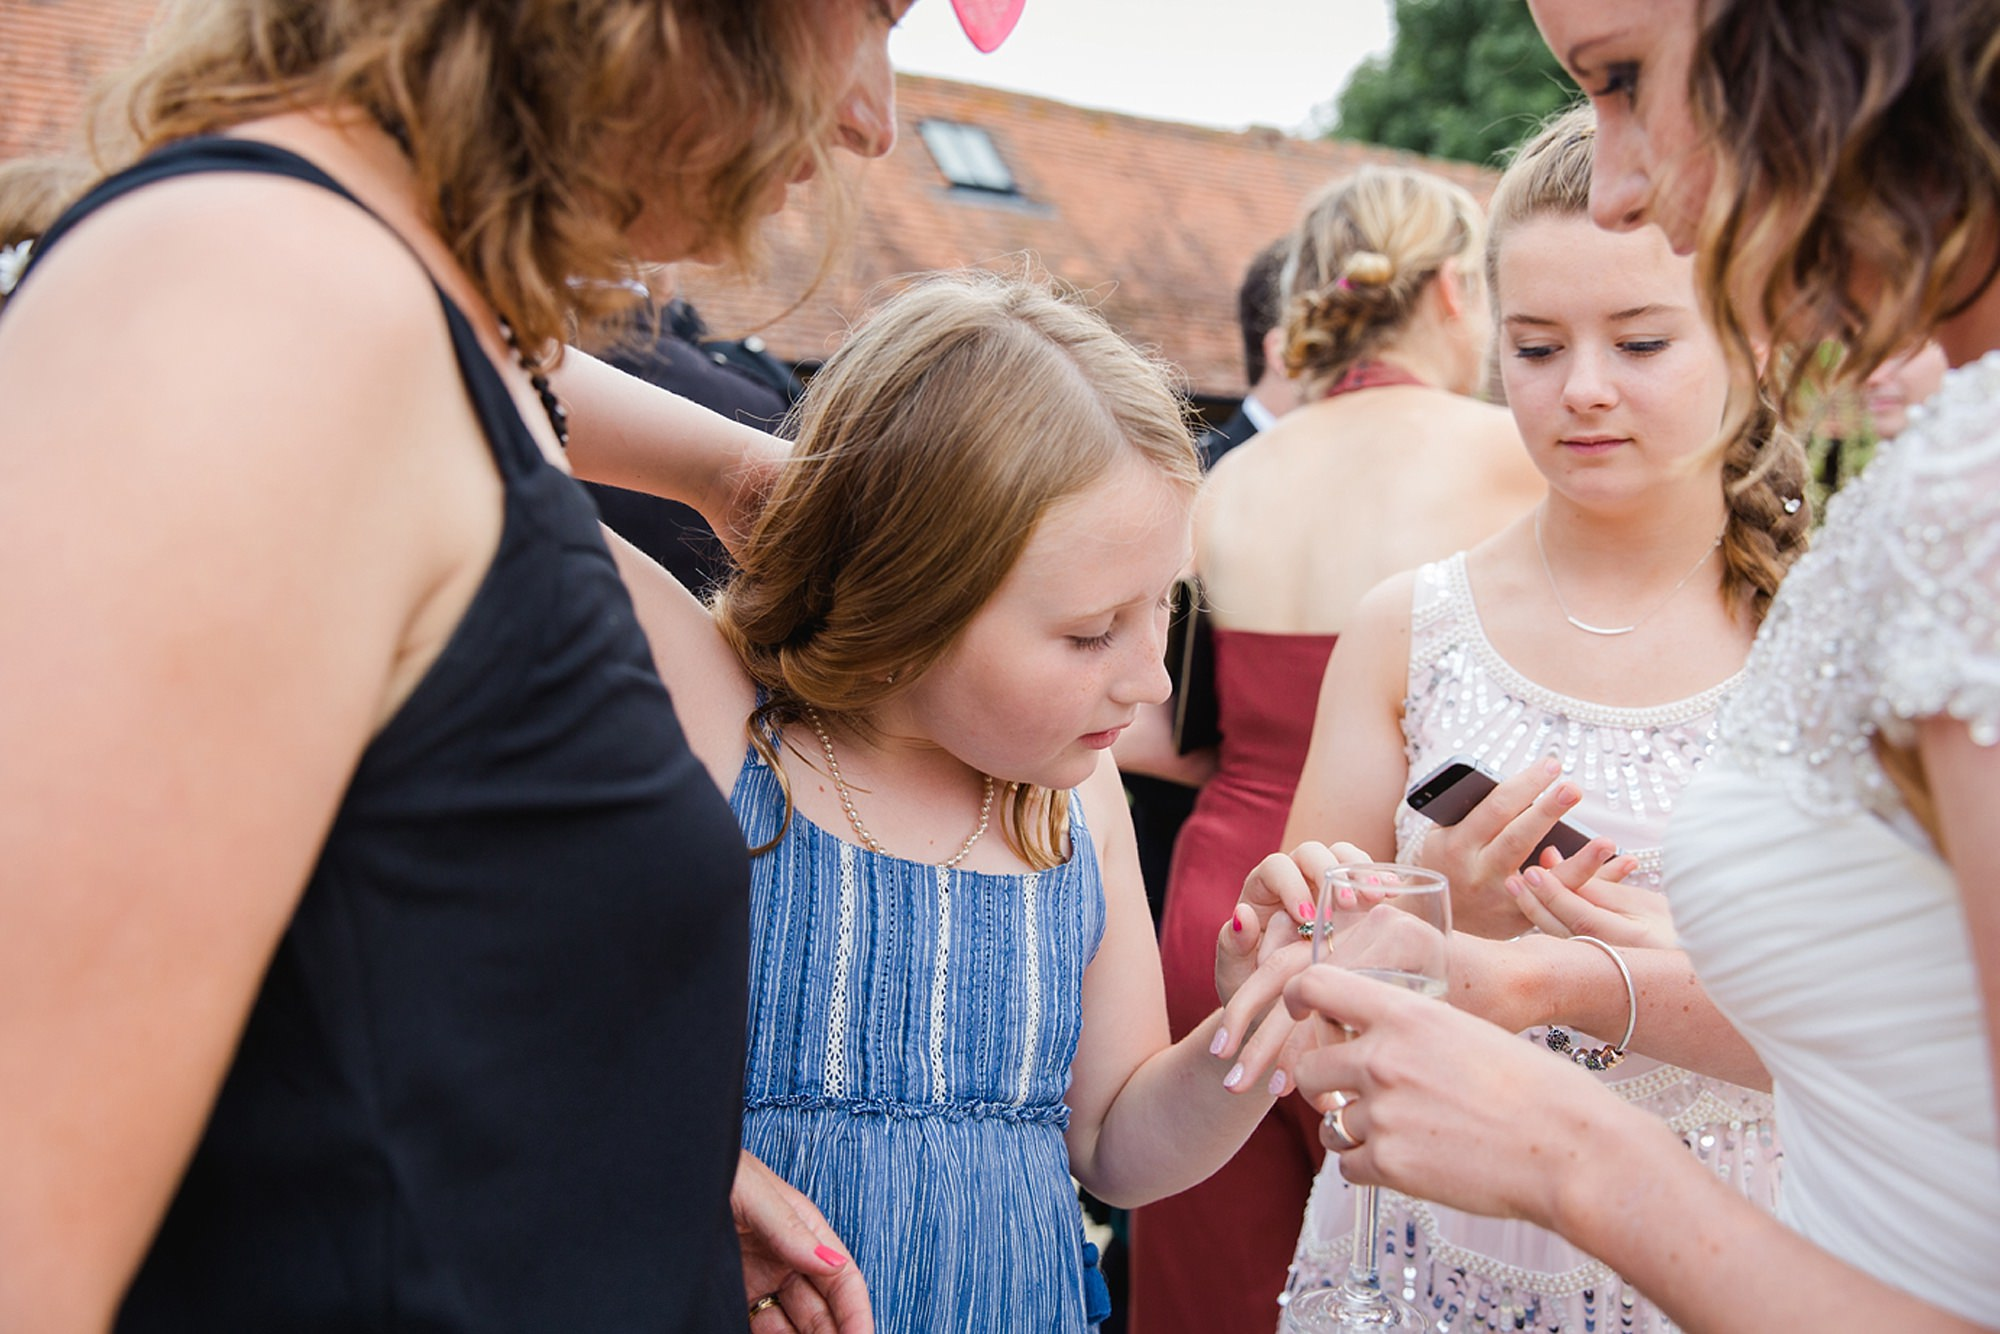 outdoor humanist wedding photography bride shows off ring